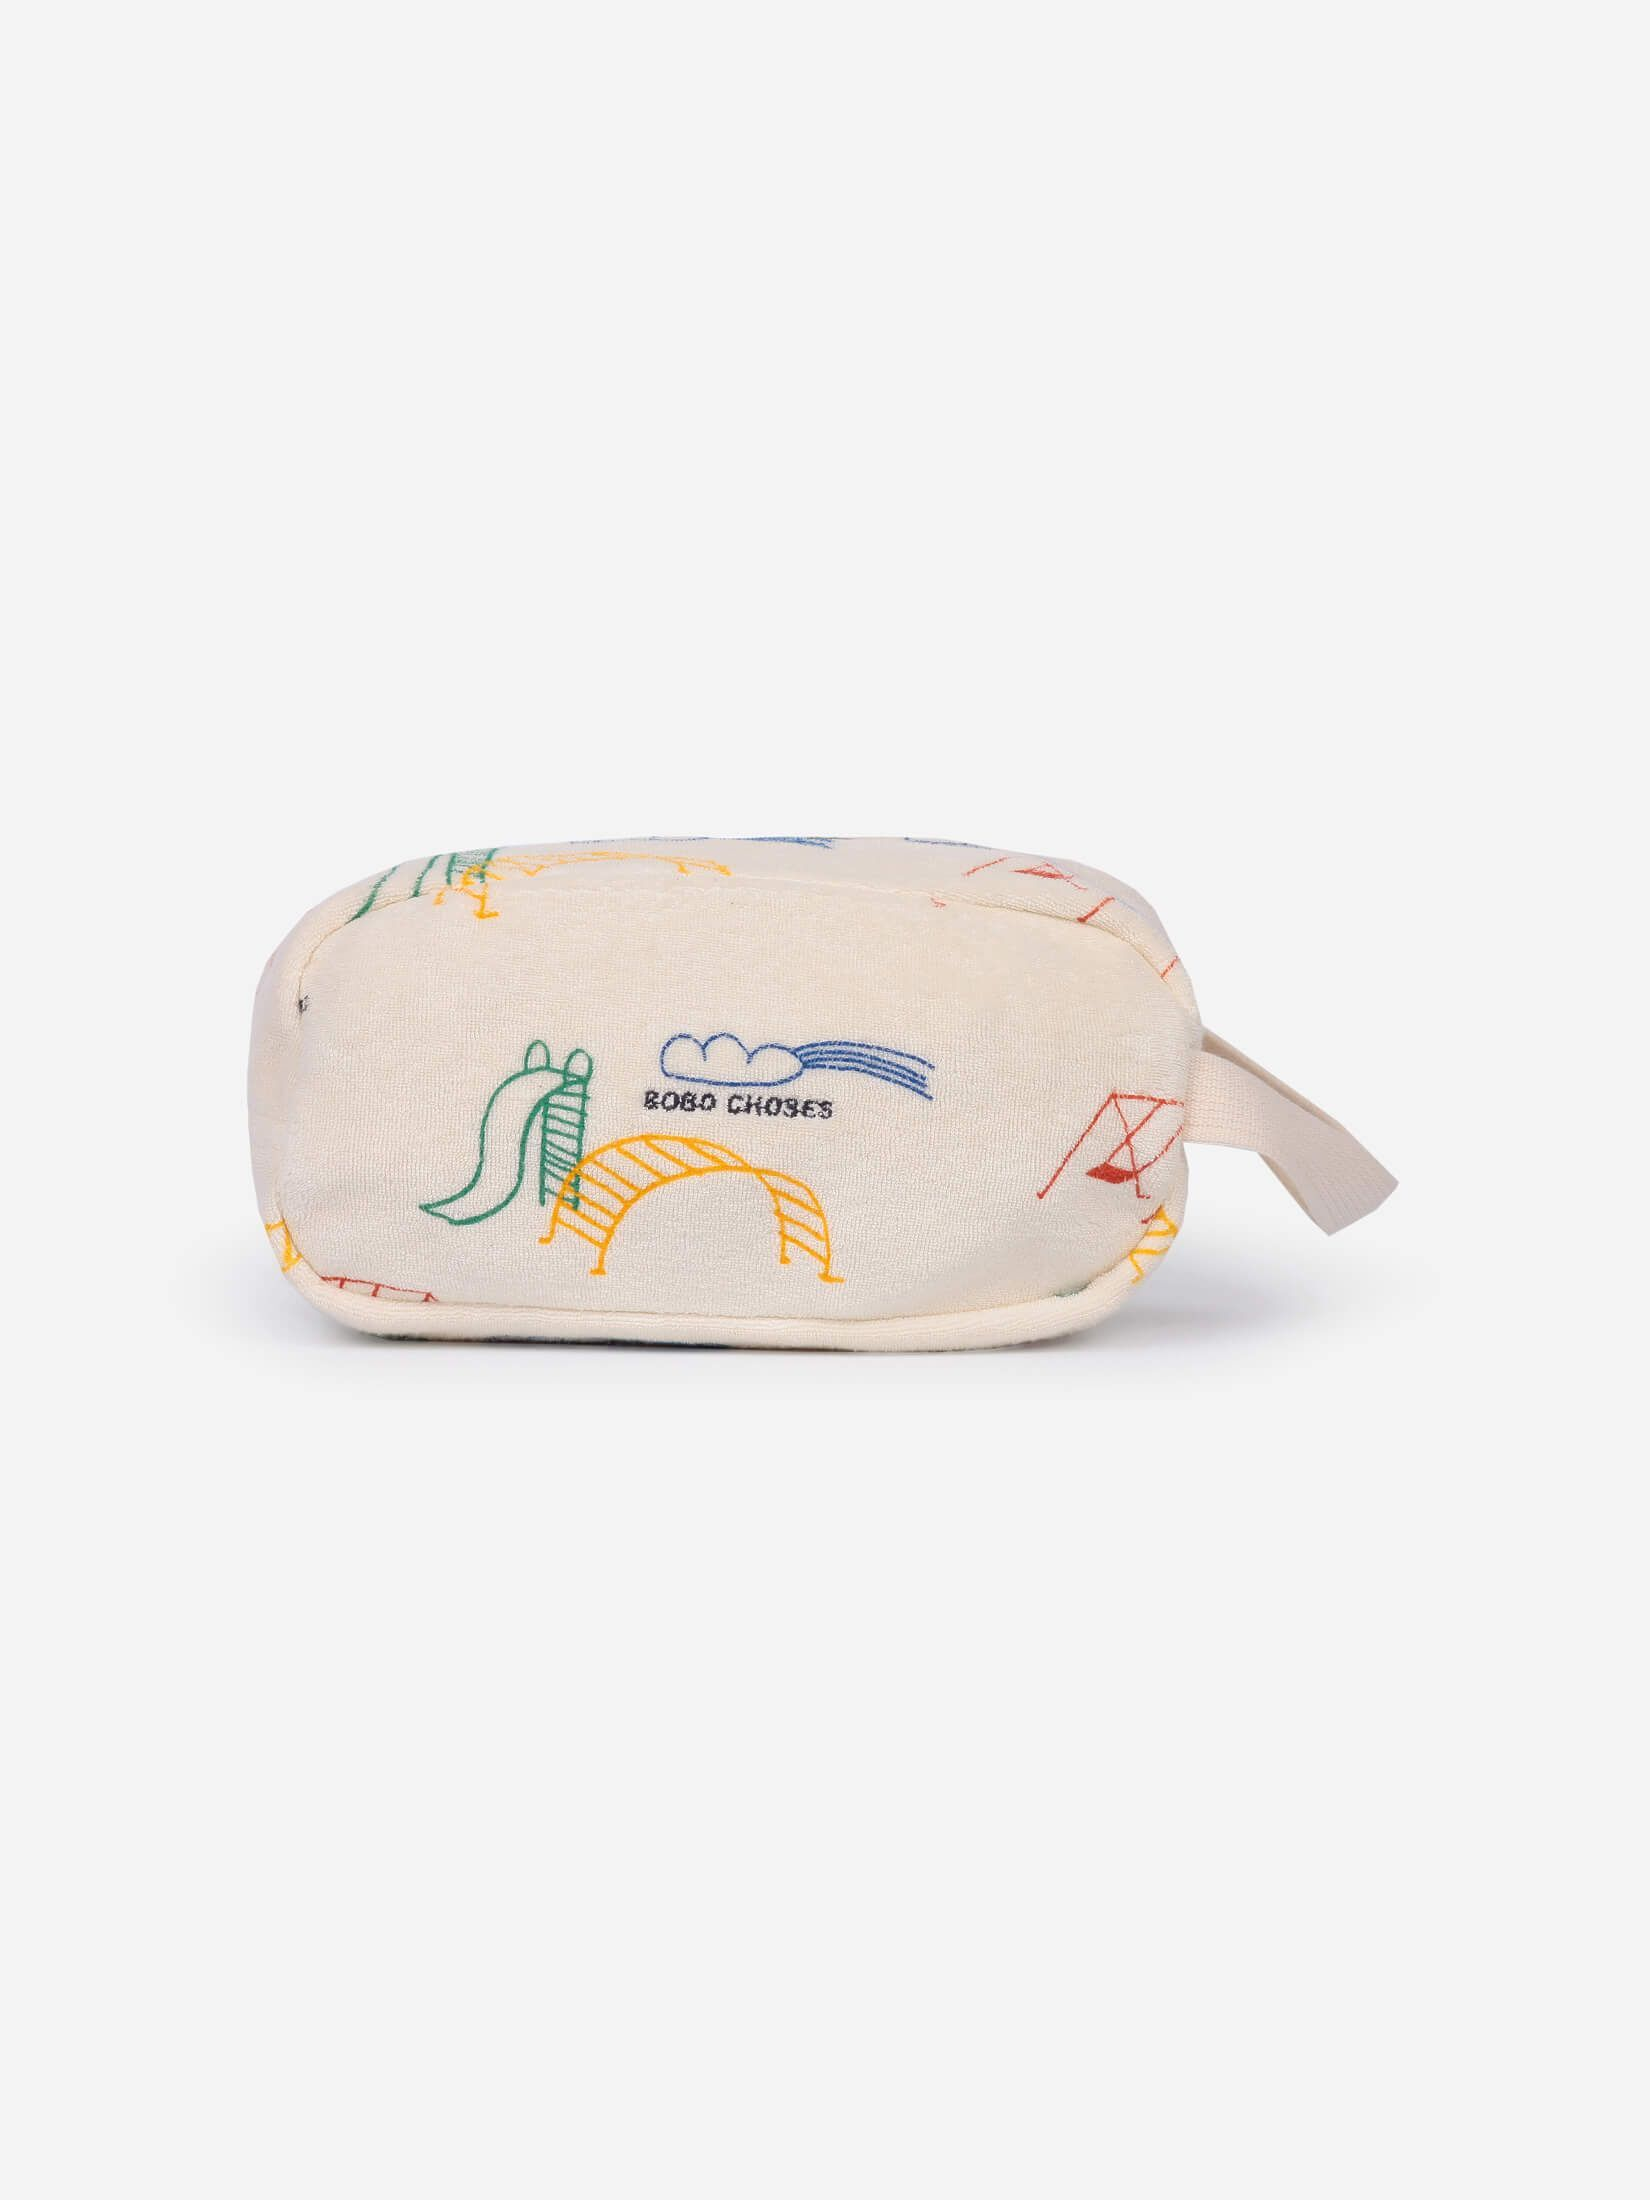 BOBO CHOSES ボボショセス Playground All Over Pouch size:one size